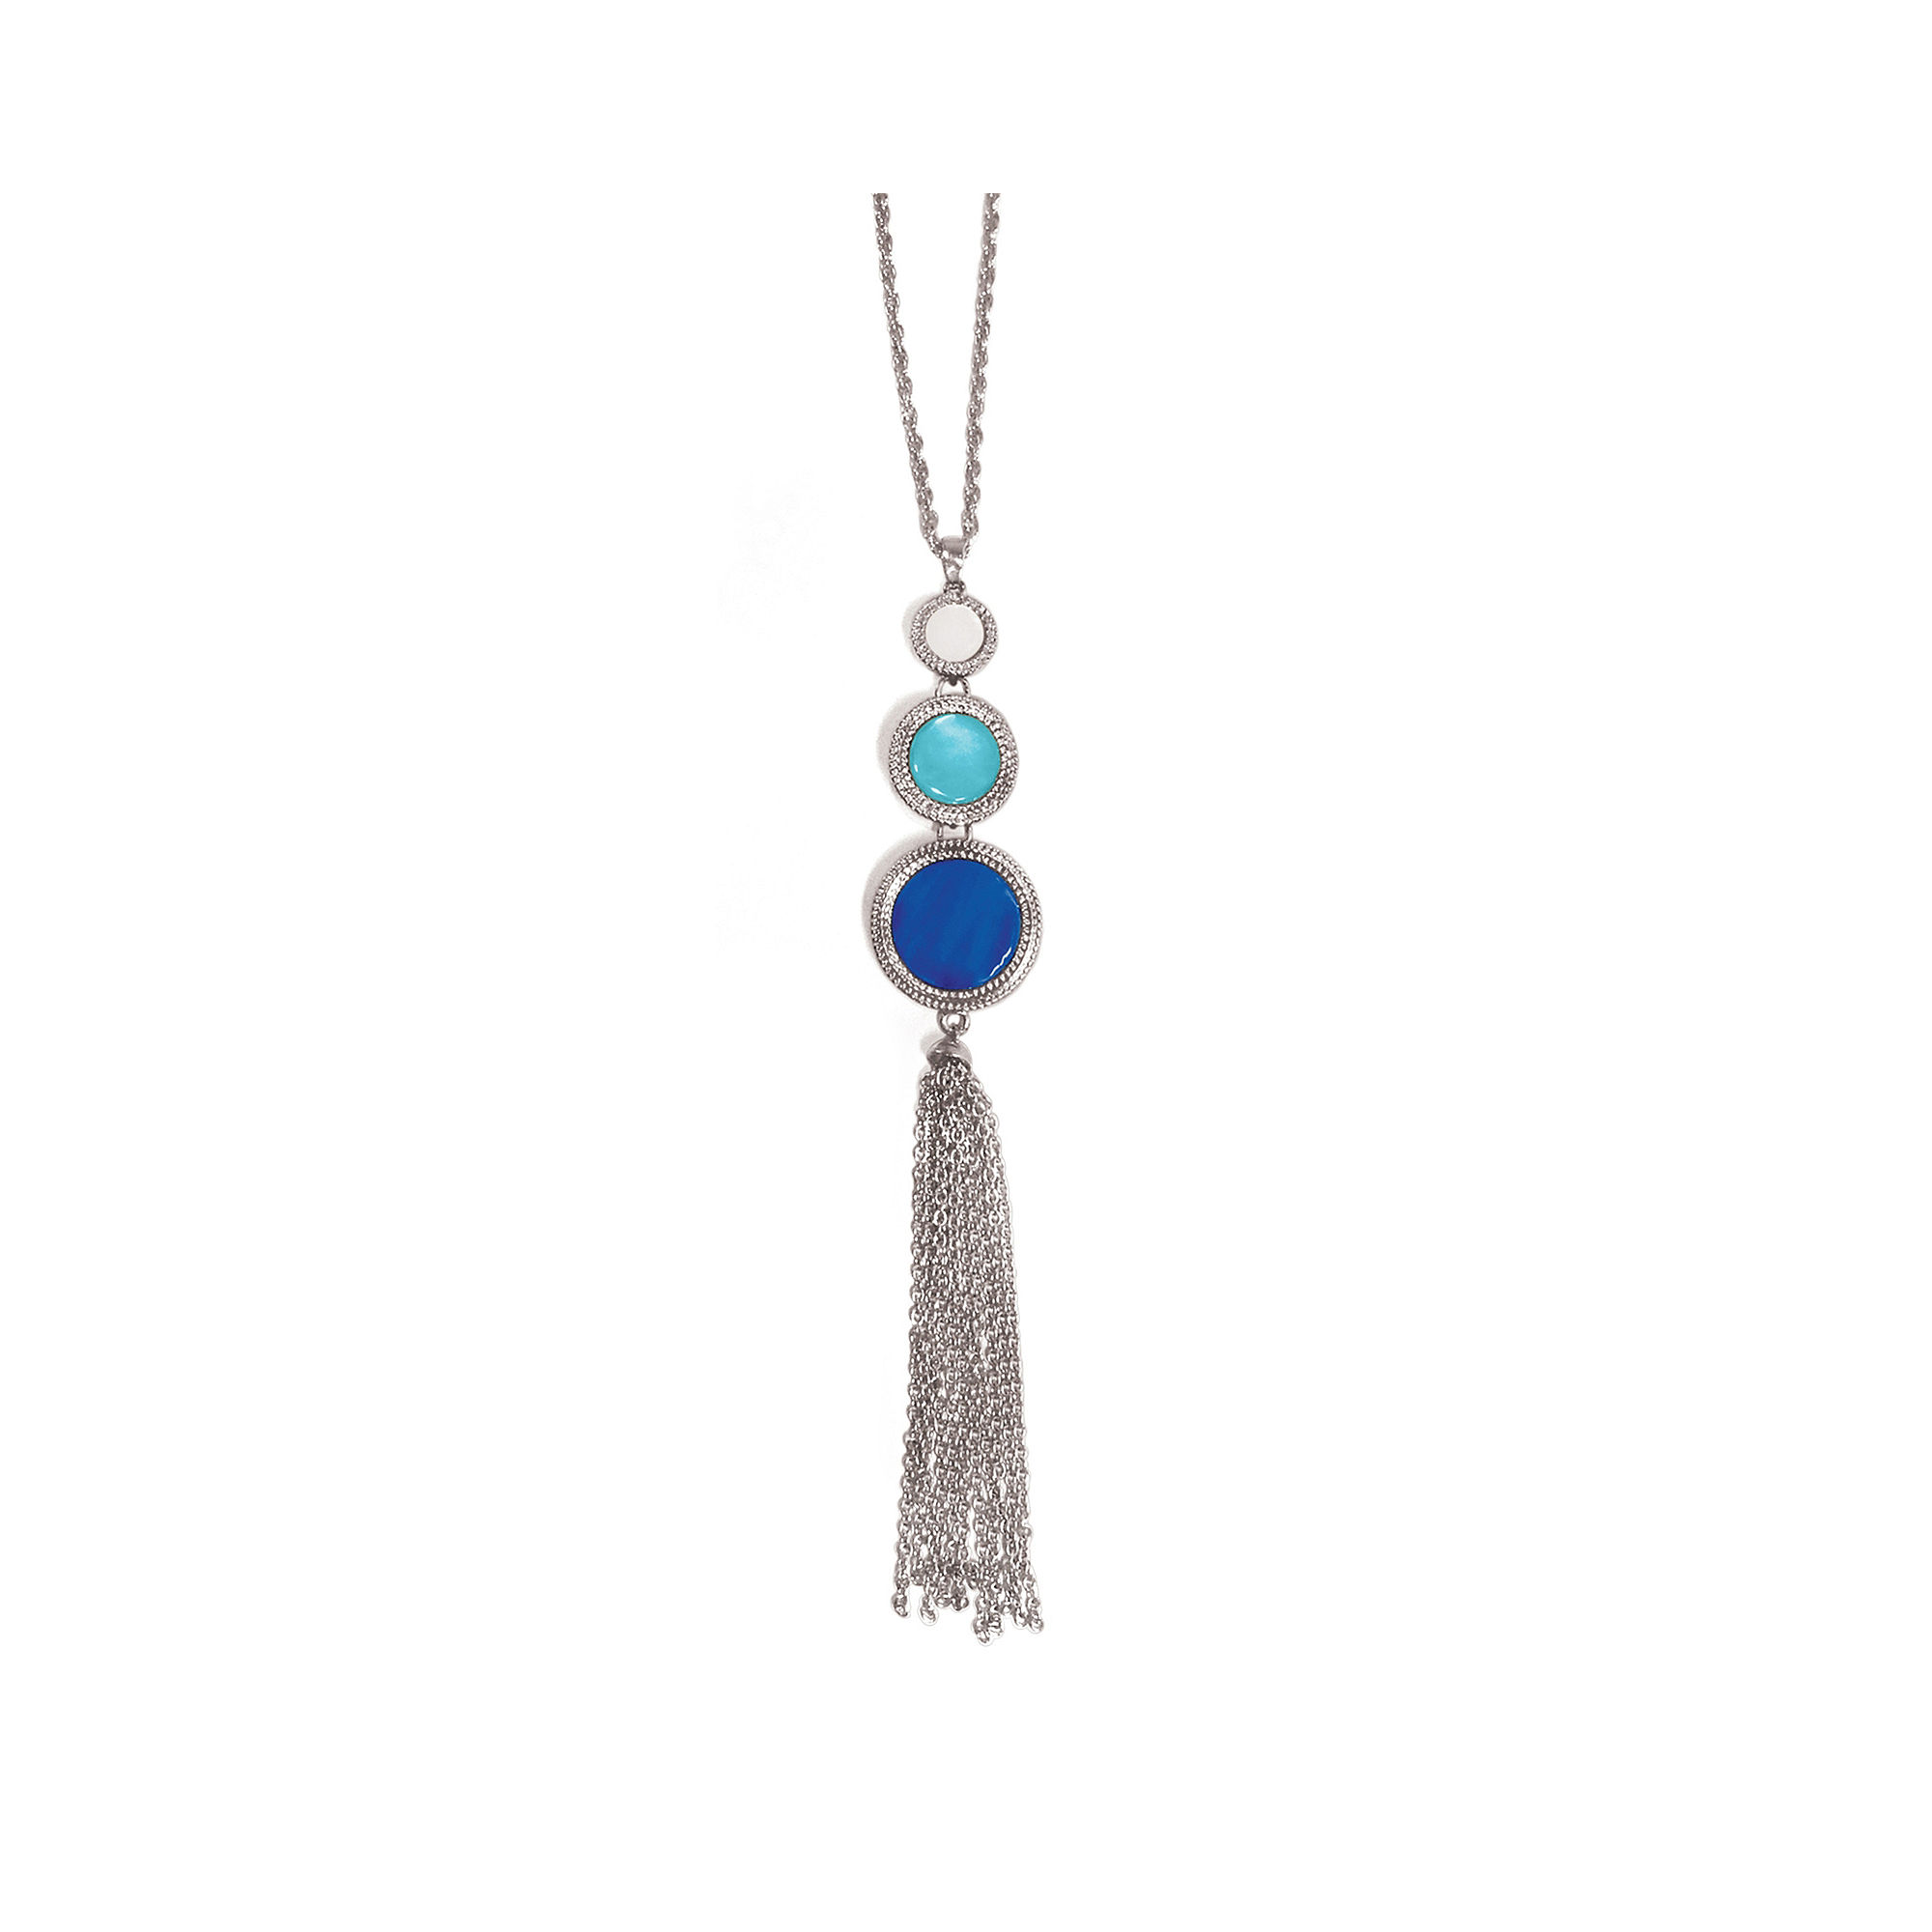 Studio By Carol Dauplaise 3-Part Tassel Necklace